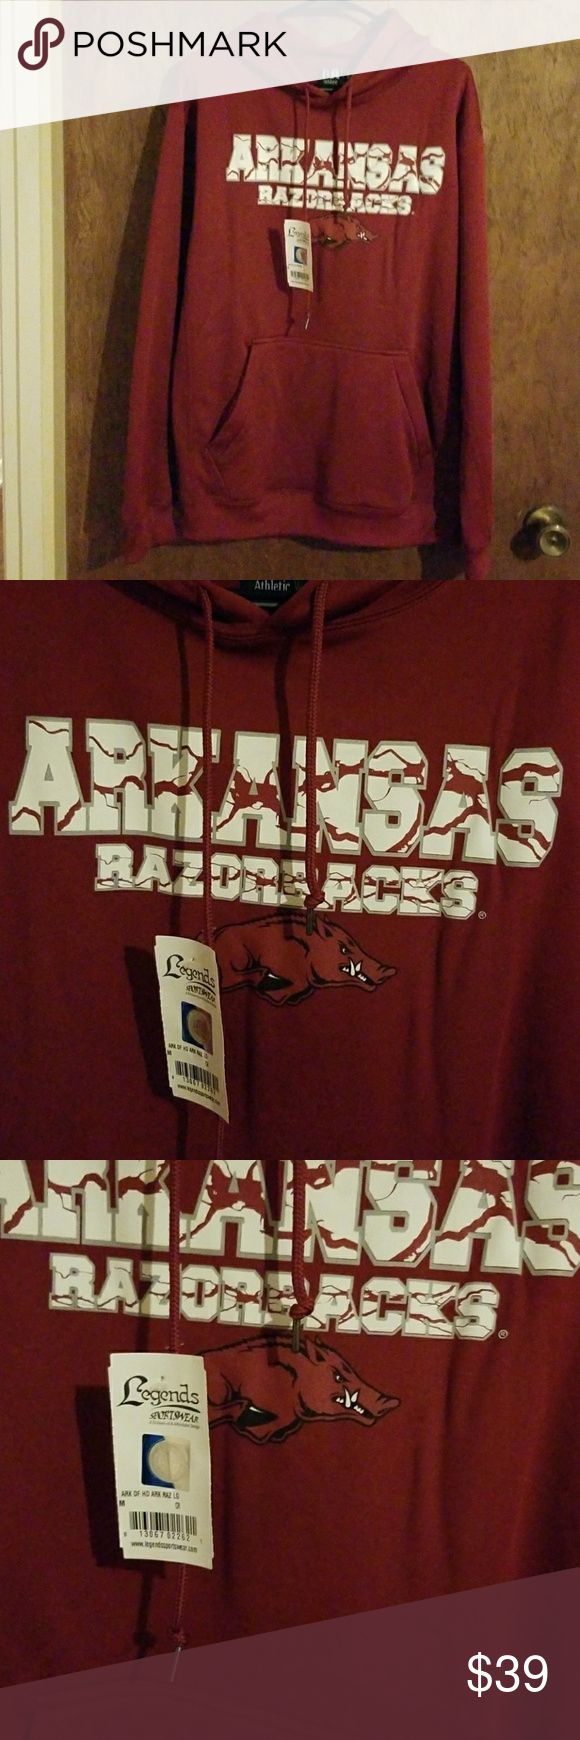 Men's Arkansas Razorback Hoodie Officially  Licensed  Collegiate  Products Size Medium.  Not a true red color but a wine red color. Smoke free home. Legends Sportswear Shirts Sweatshirts & Hoodies